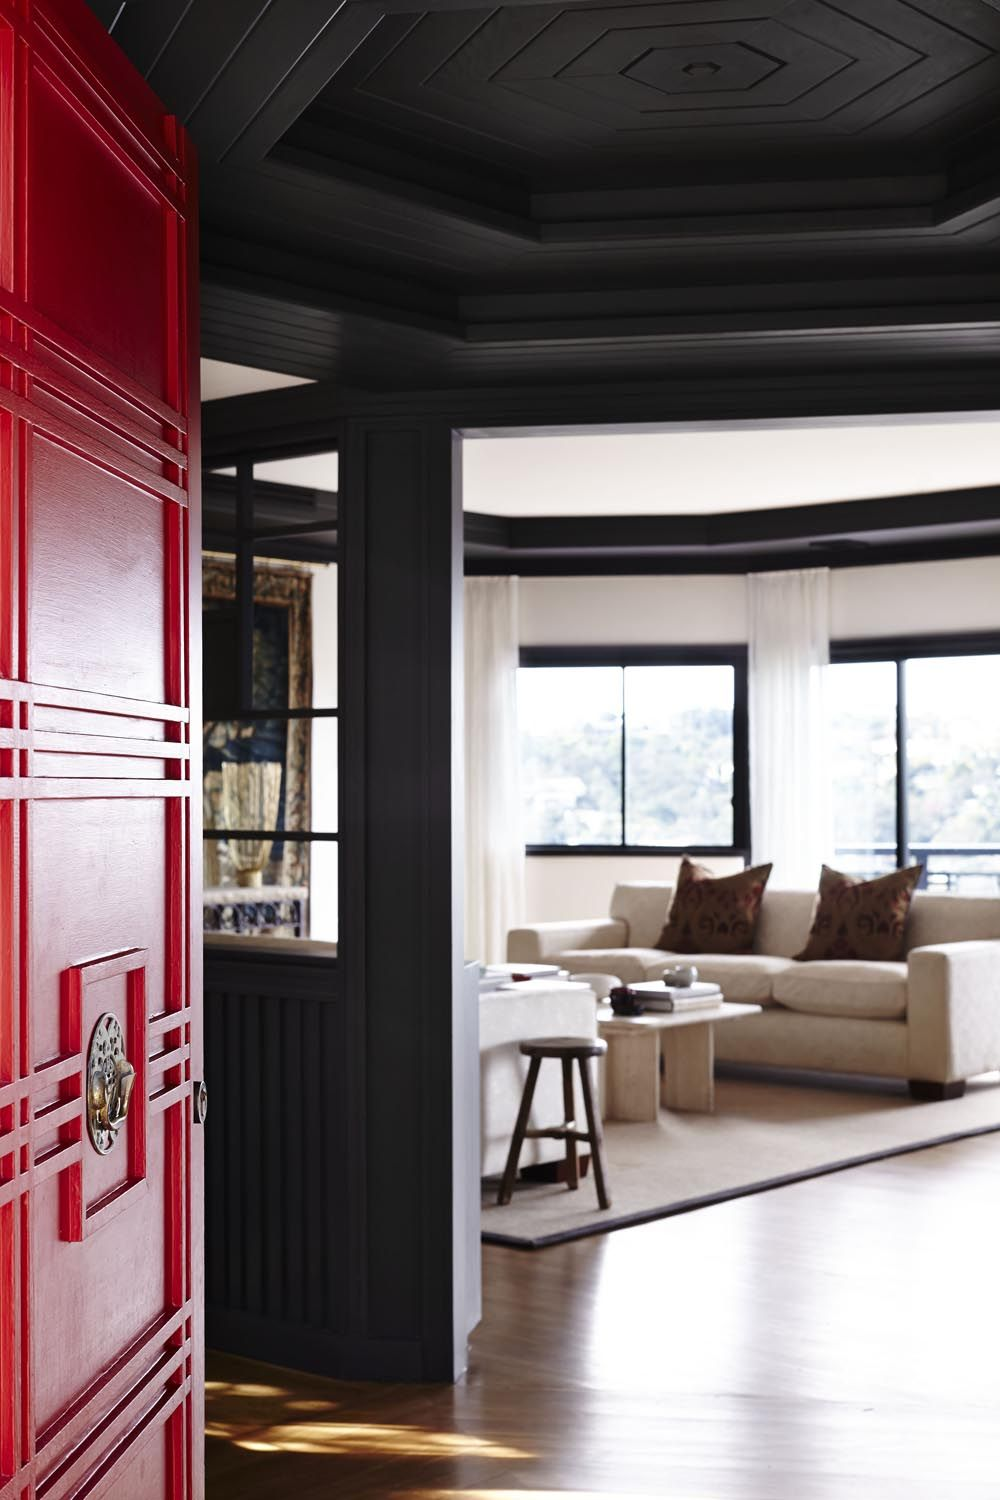 Dulux Zestaw Bedroom In A Box: Entry Door (dulux Red Box) And Living Room